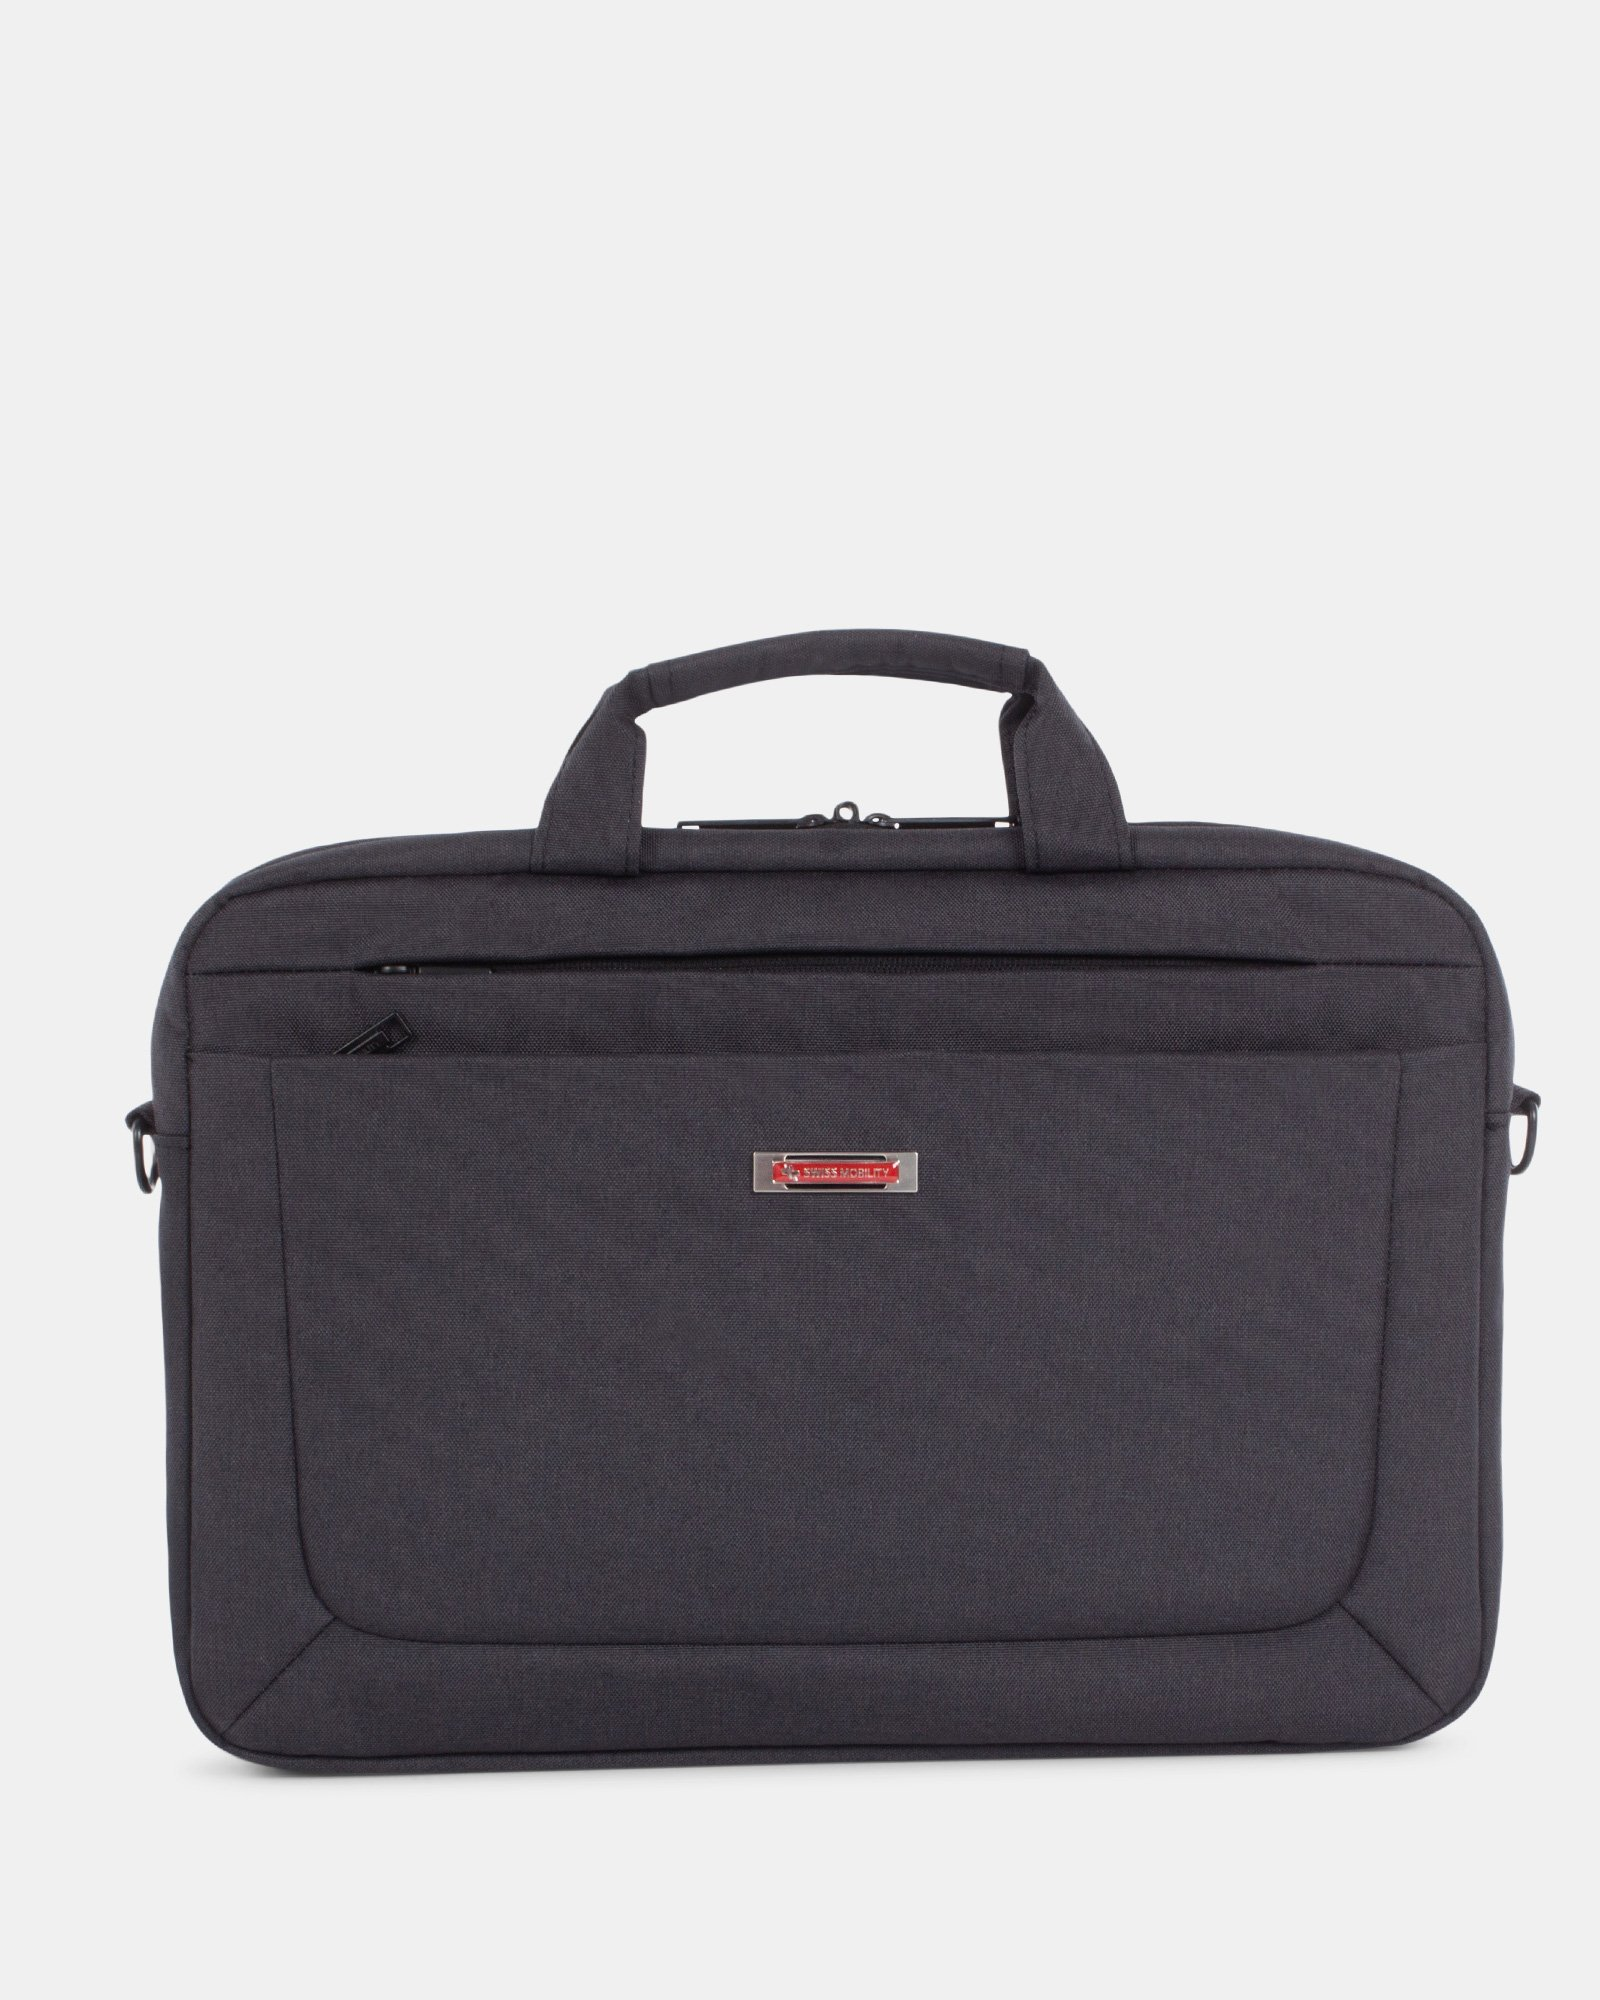 Cadence – Soft Briefcase  - Swiss Mobility - Zoom